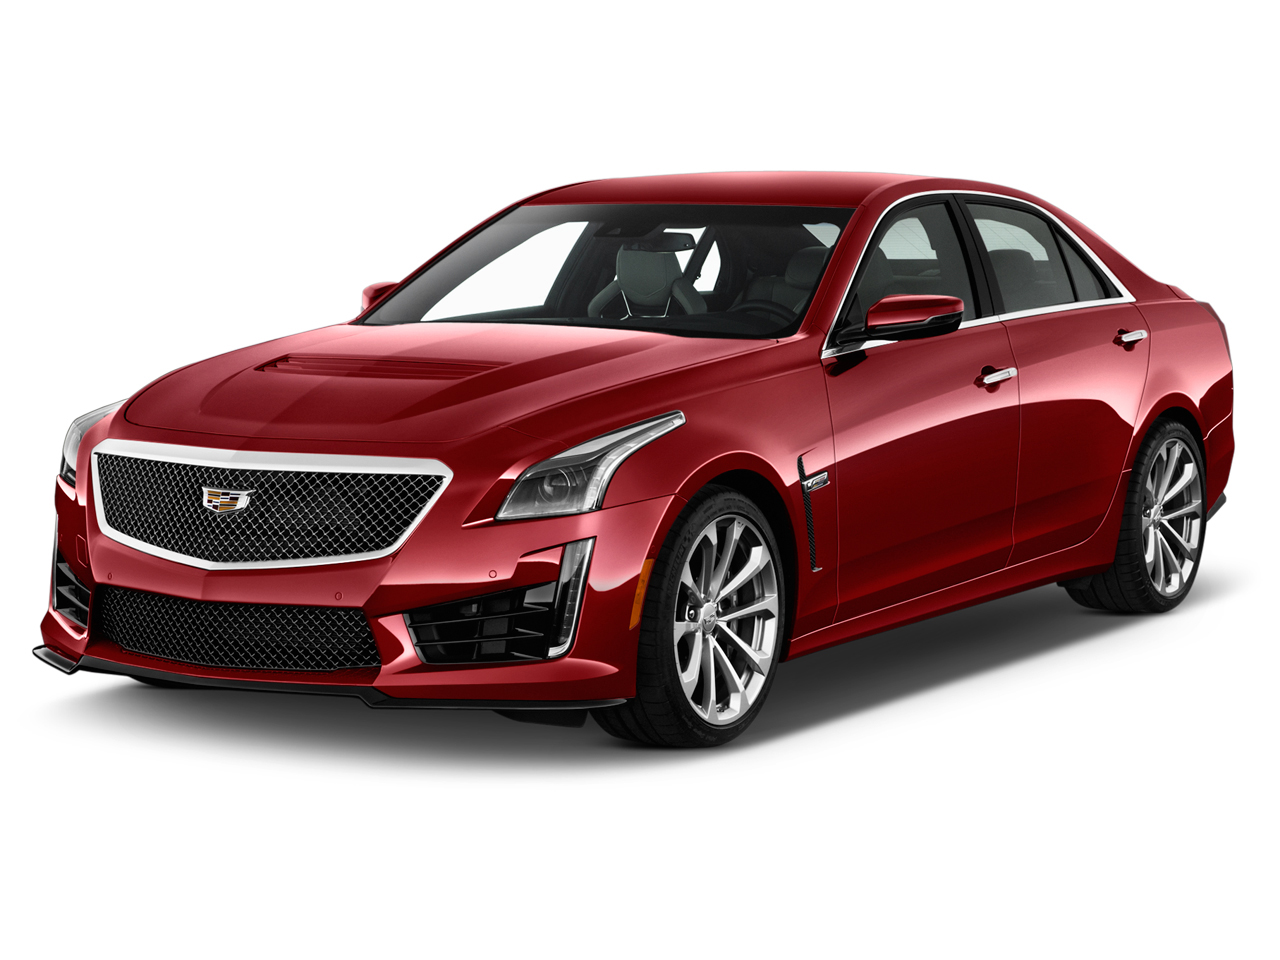 2016 Cadillac Cts Styling Review The Car Connection